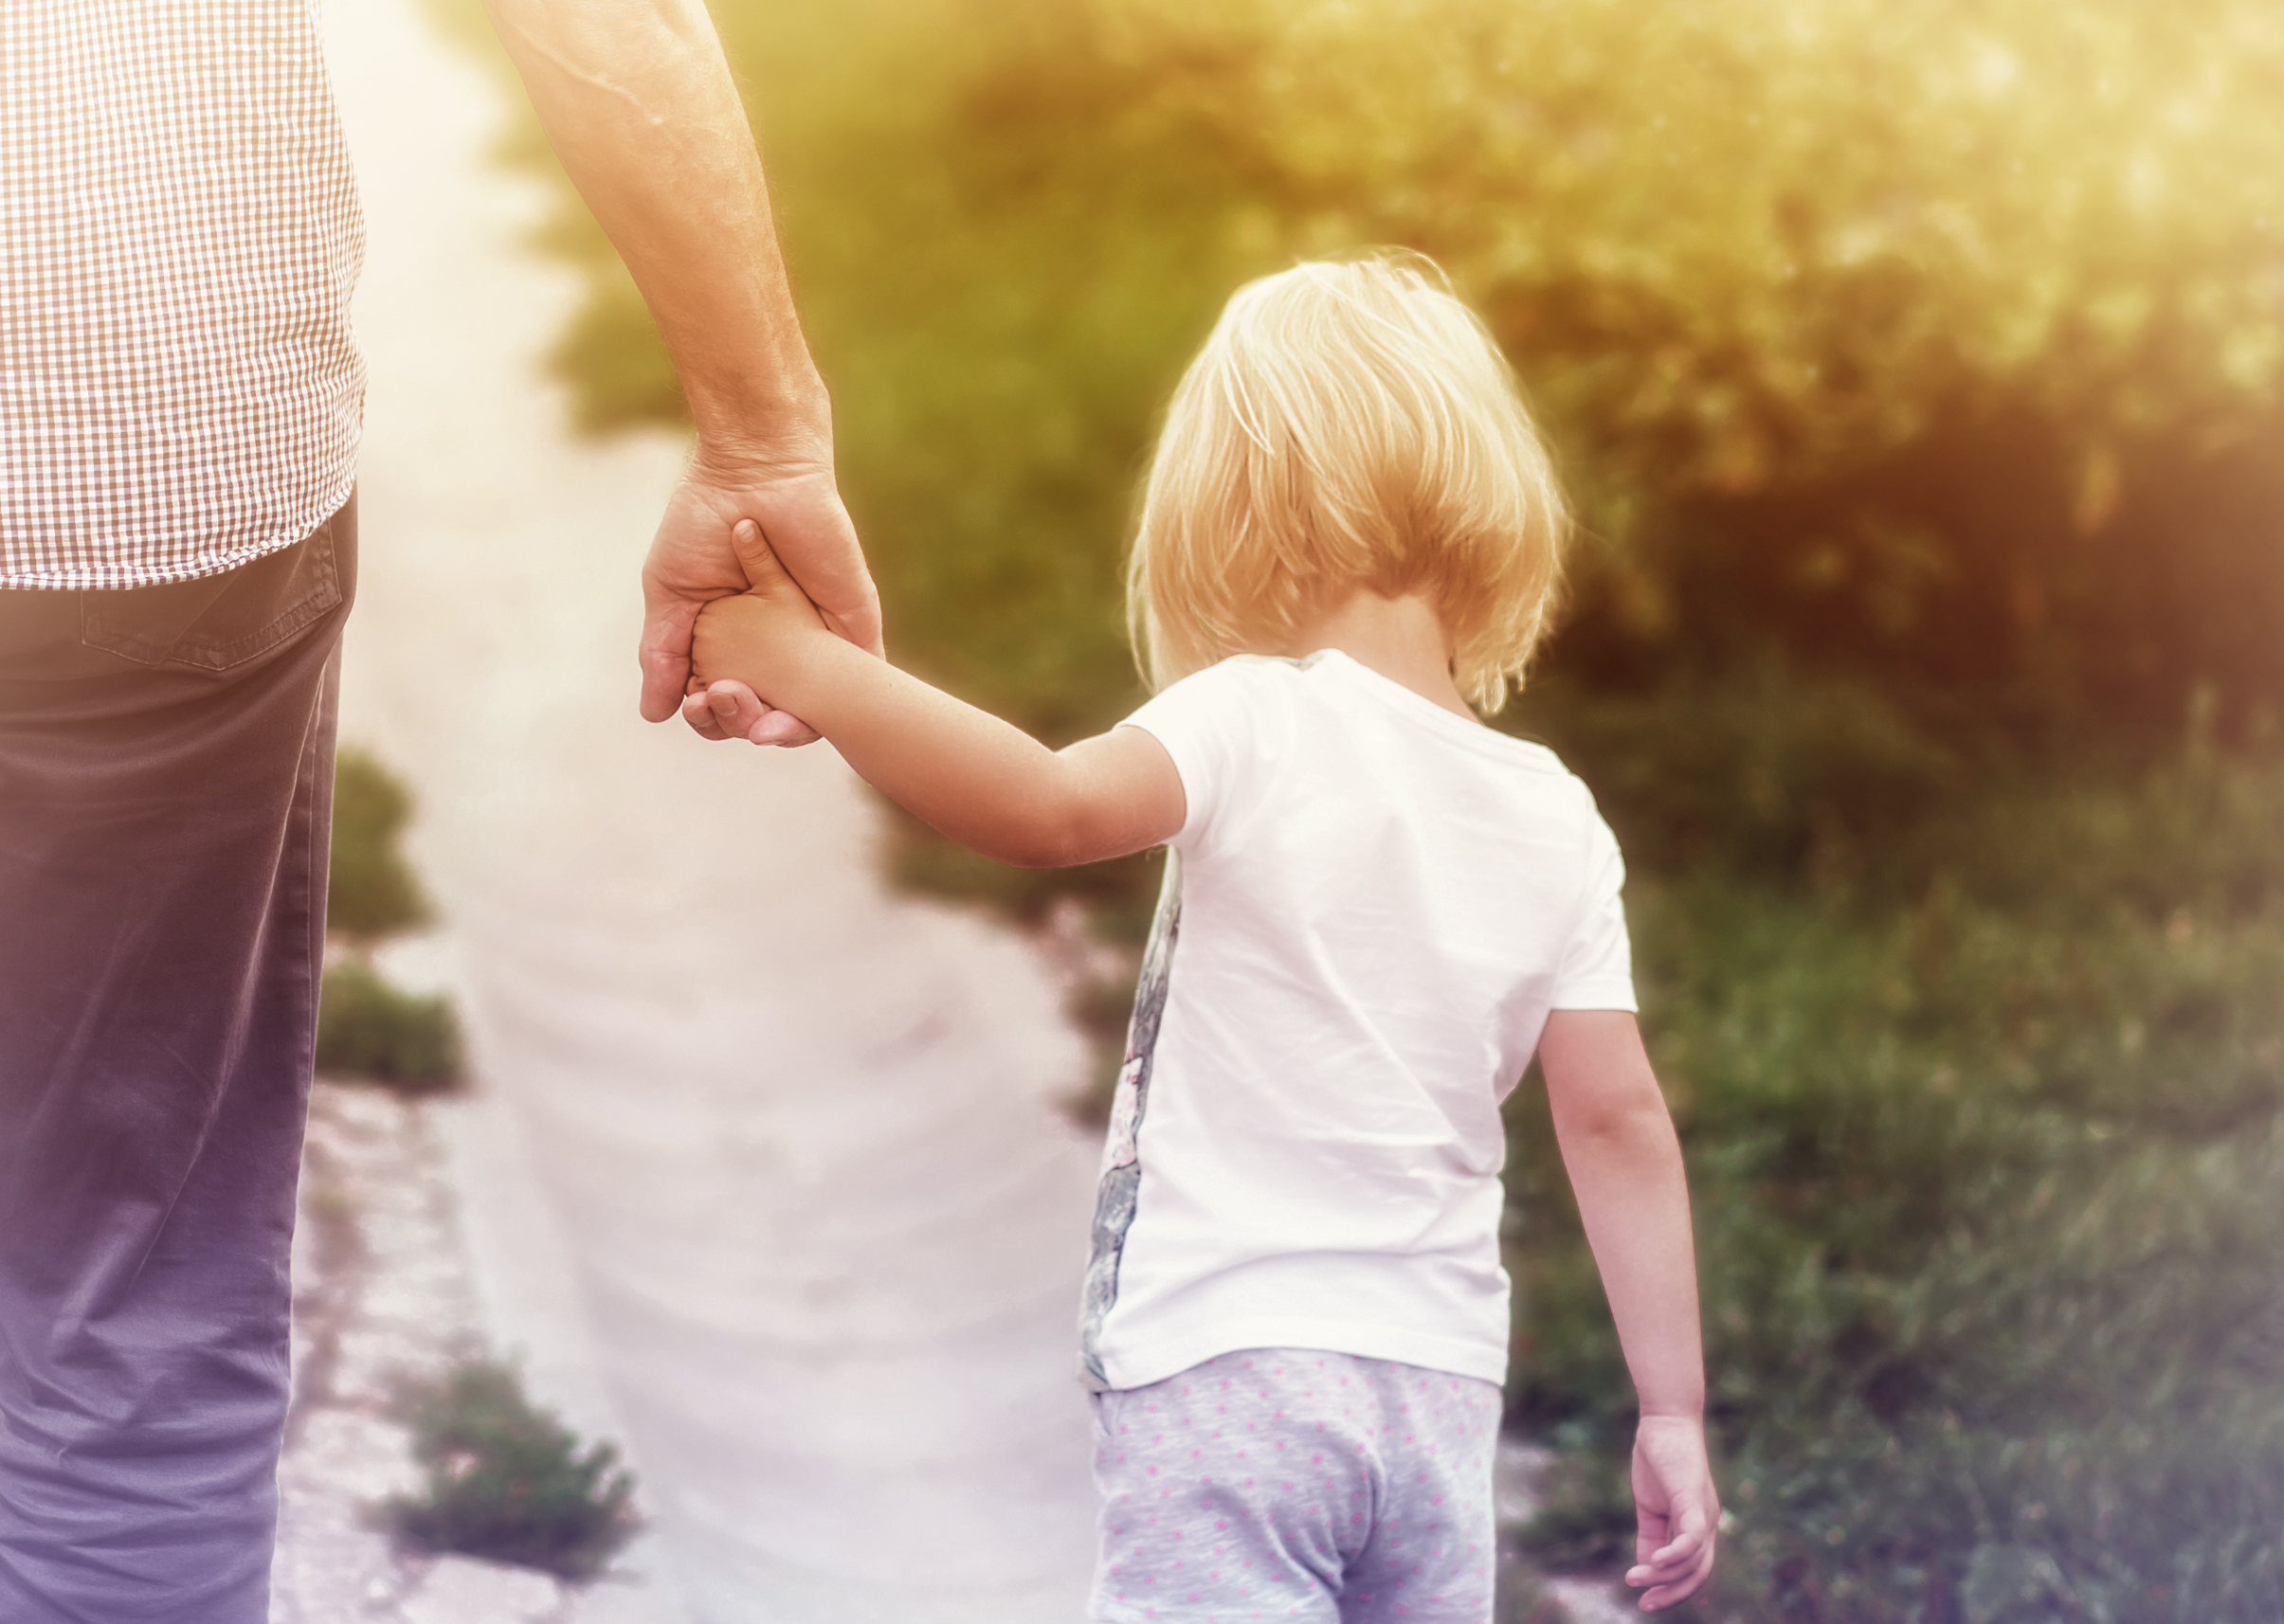 Father Holding Hands with Little Daughter, Adult, Outside, Recreation, Protective, HQ Photo